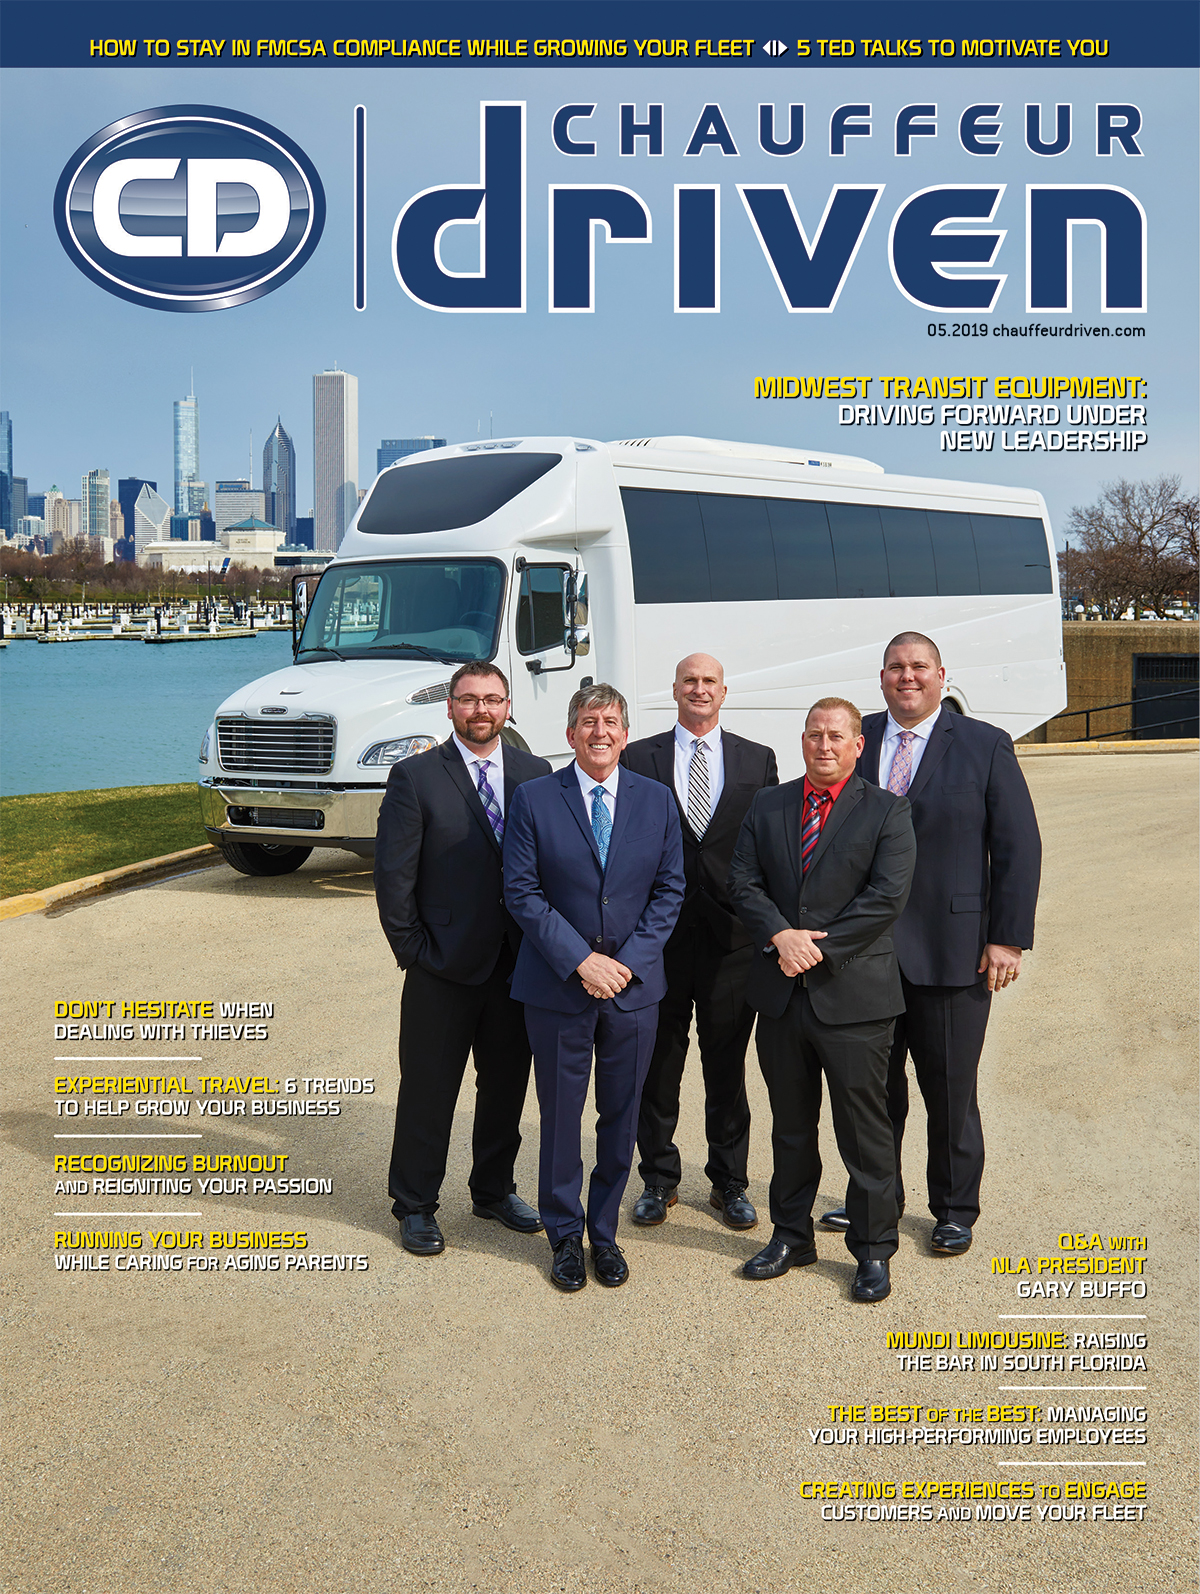 Cover Story: Midwest Transit Equipment: Driving Forward